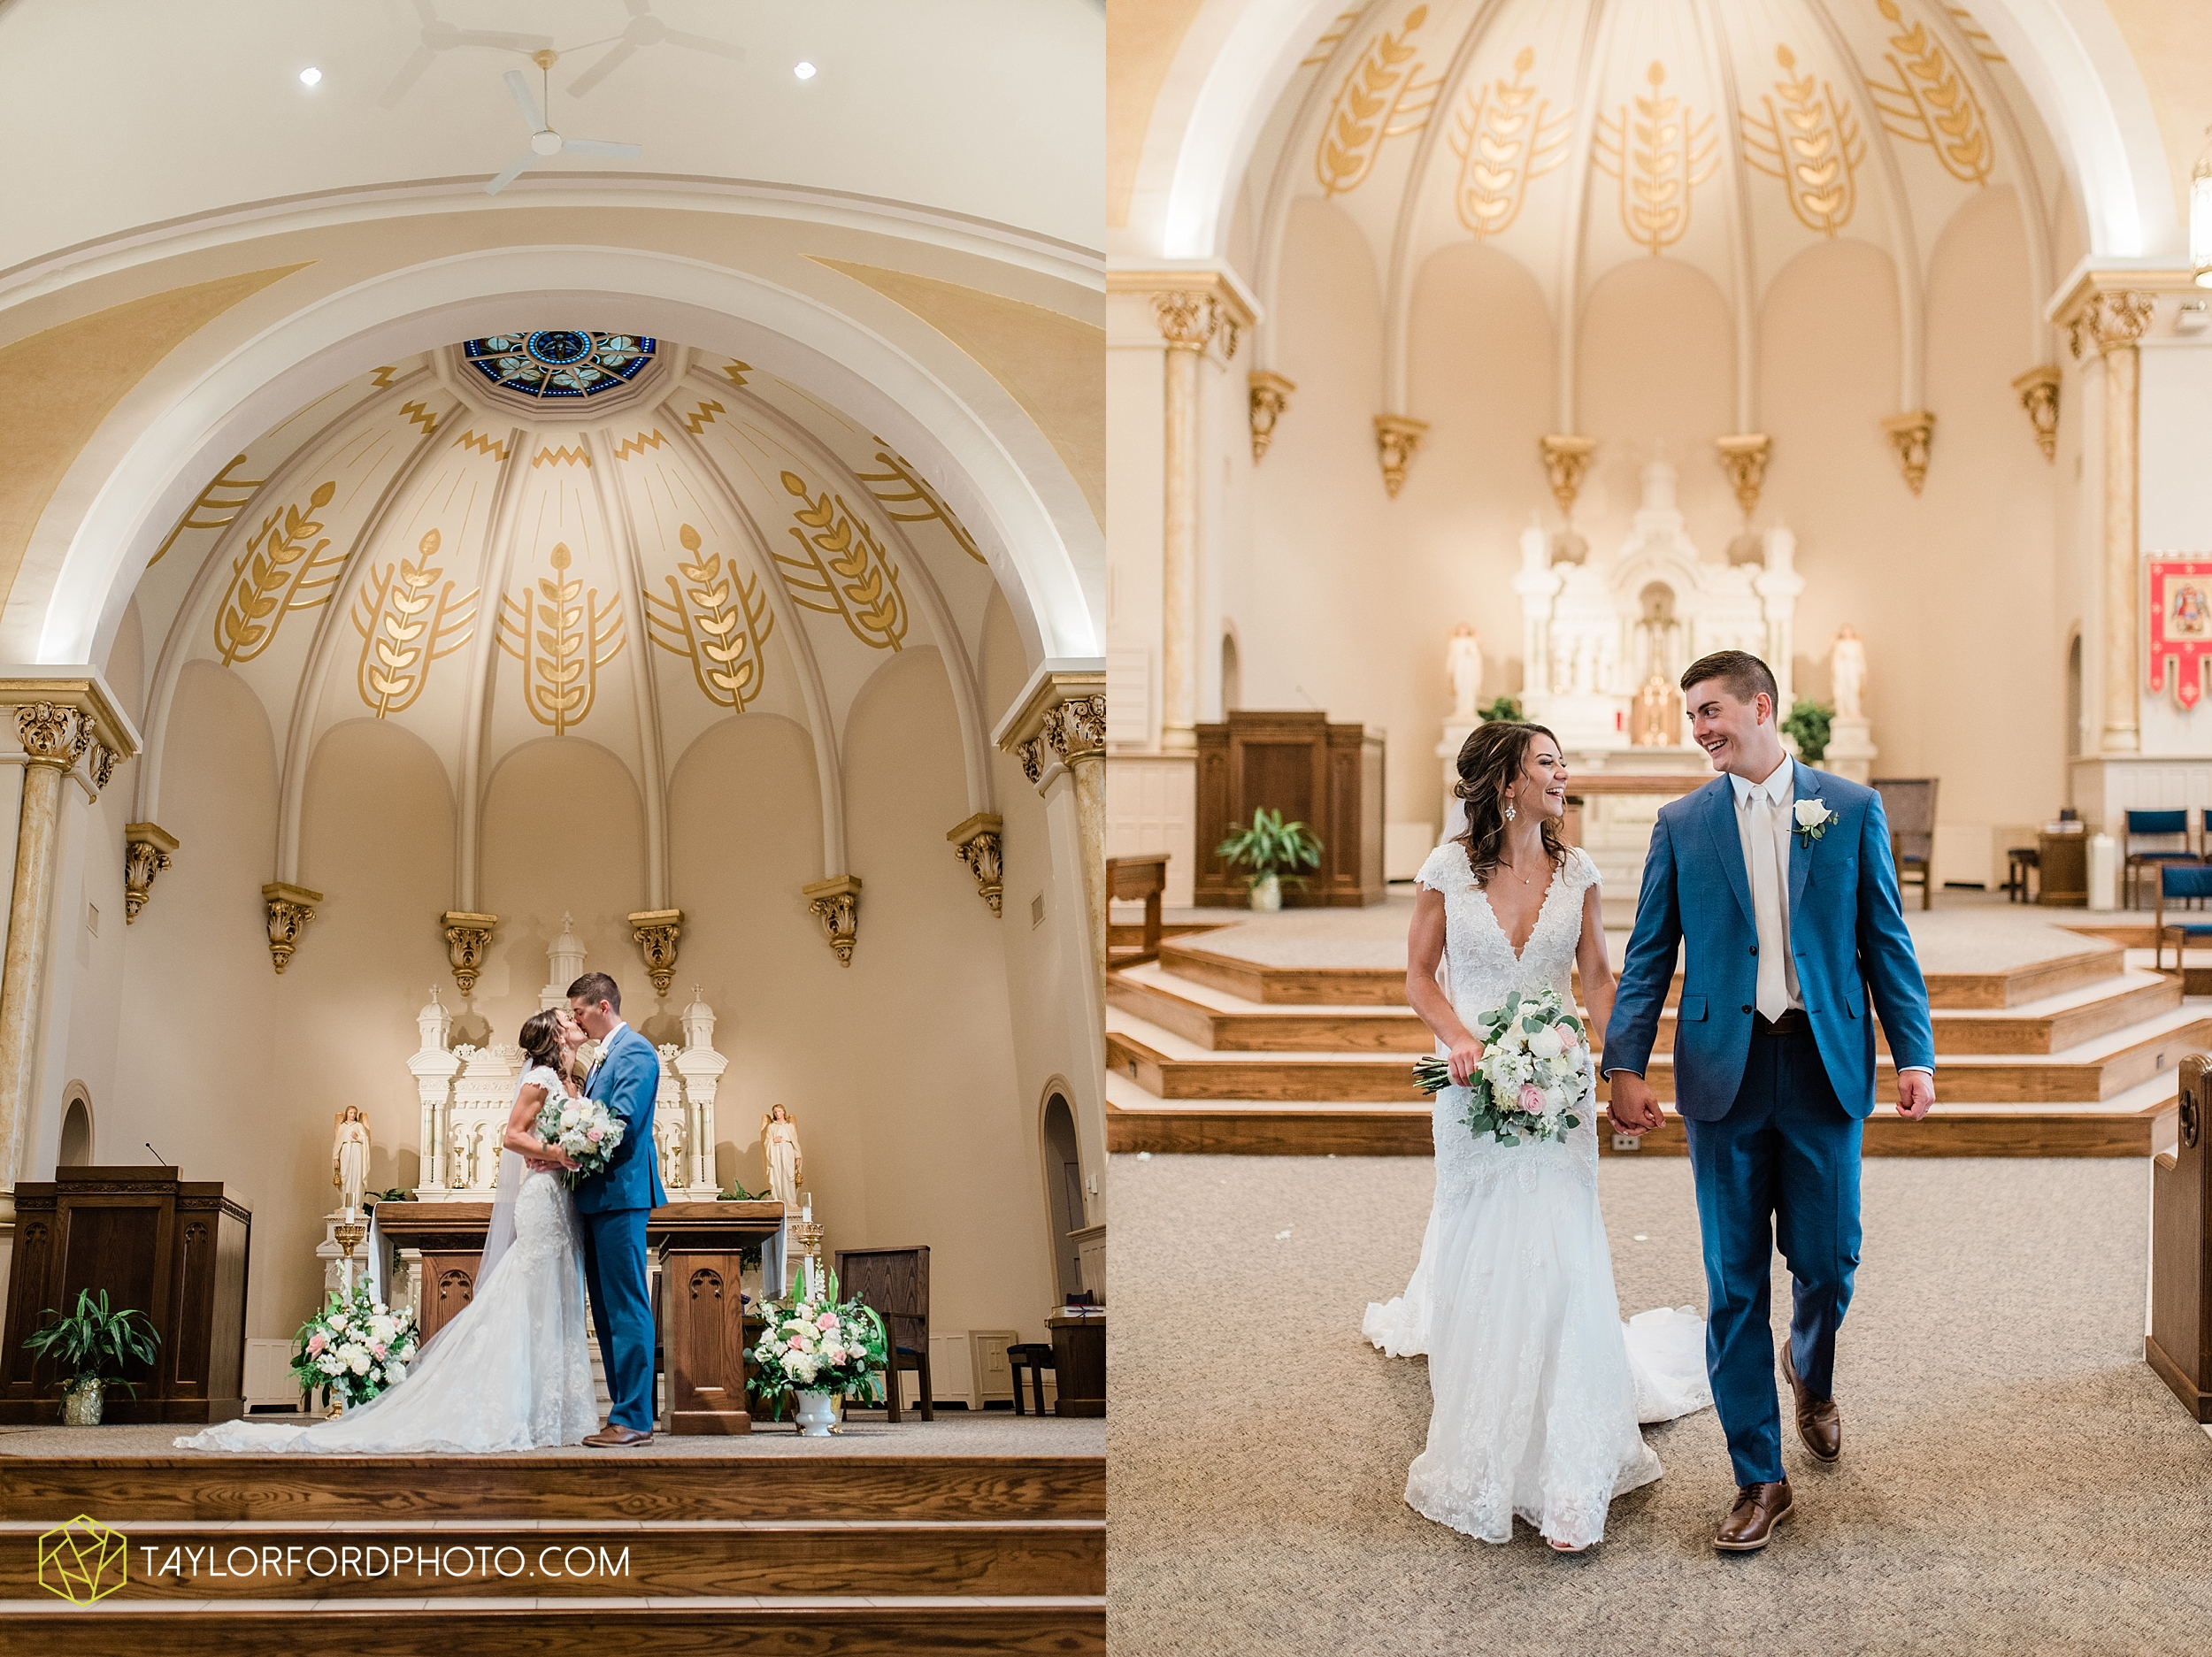 kacee-haden-sholl-second-story-saint-marys-knights-of-columbus-defiance-ohio-wedding-photographer-taylor-ford-photography_0159.jpg